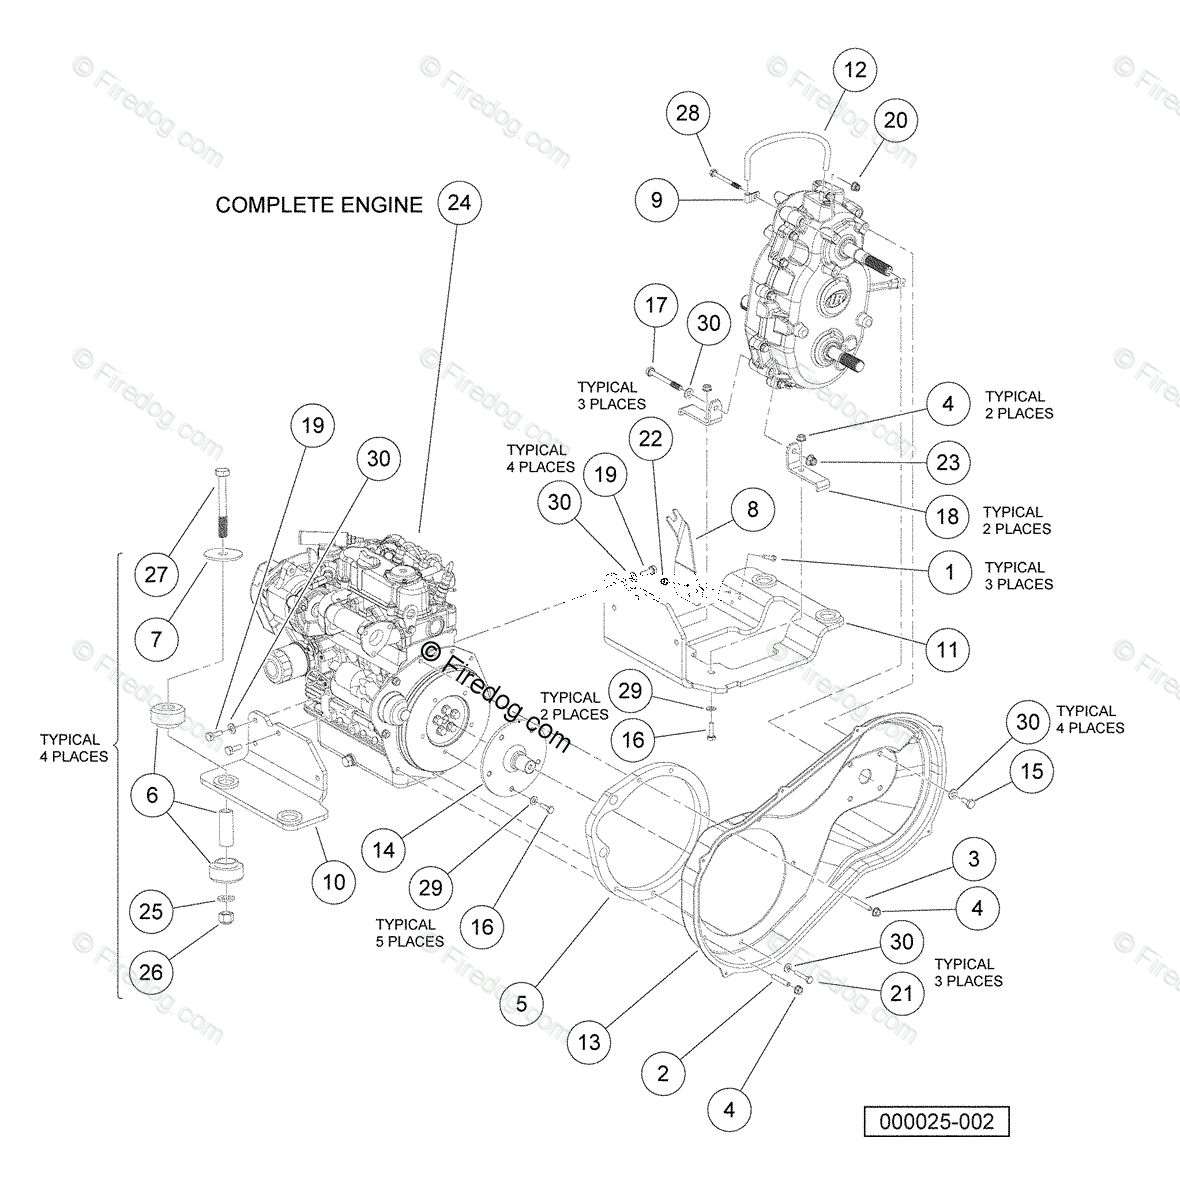 Kubotasel Engine Parts Manual D722